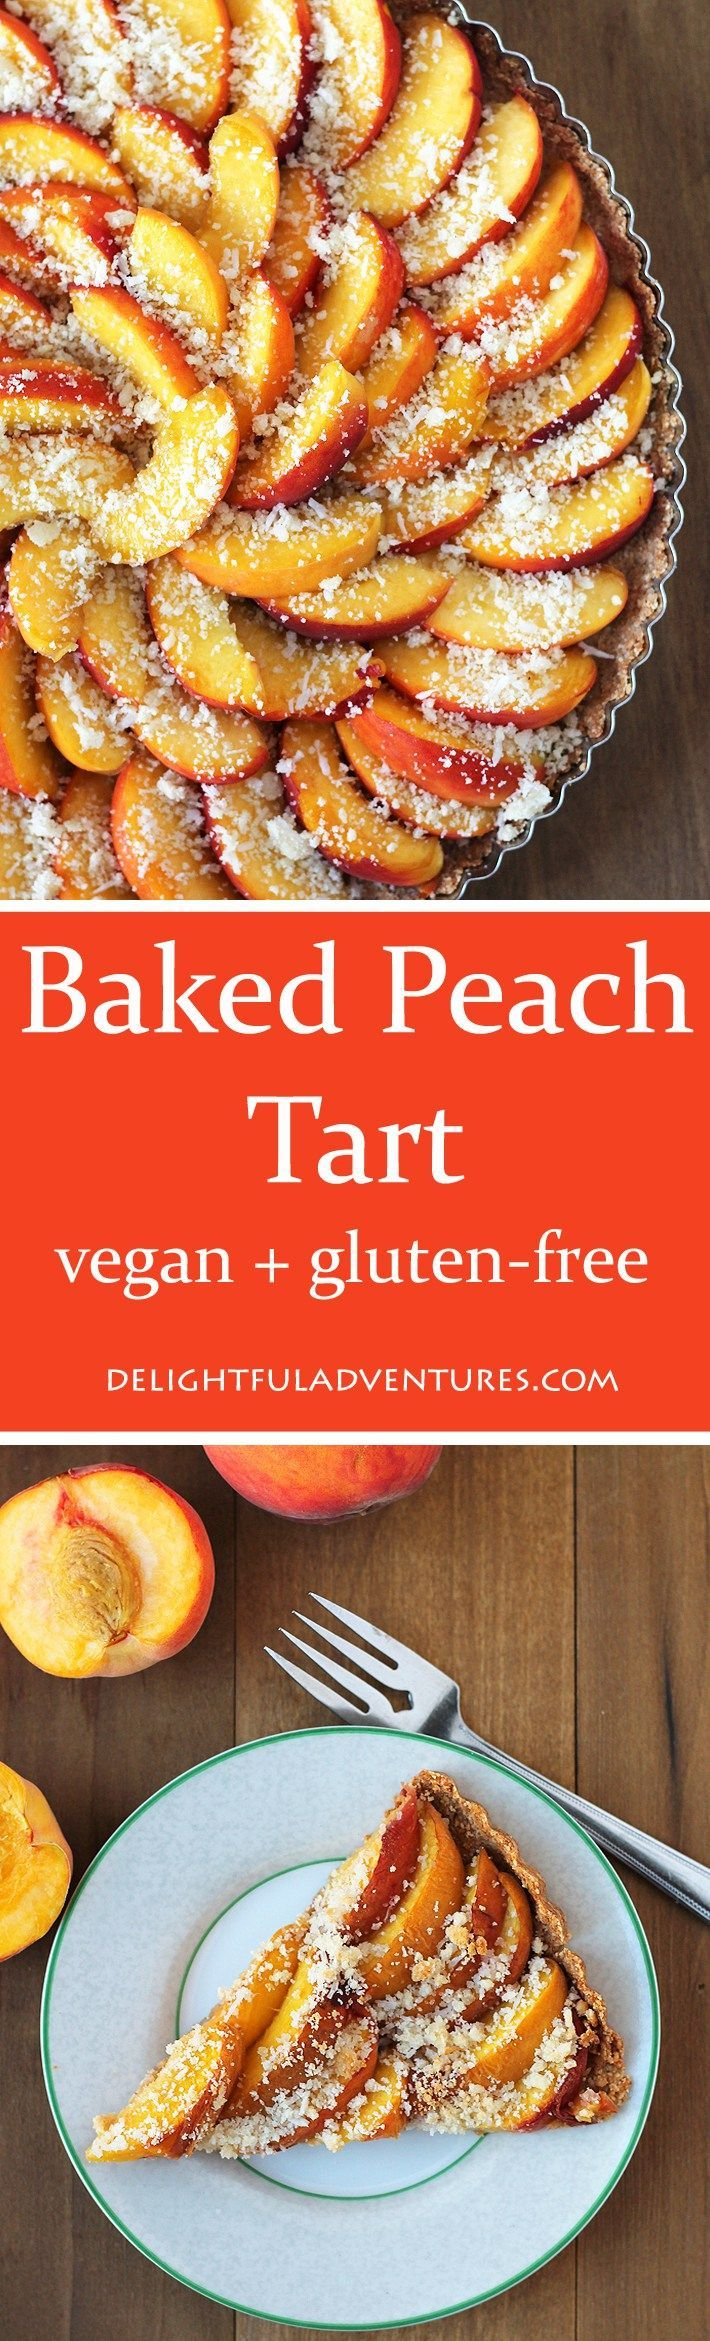 This light and not too sweet vegan, gluten-free baked peach tart is the perfect summer dessert to make and share with friends and family.